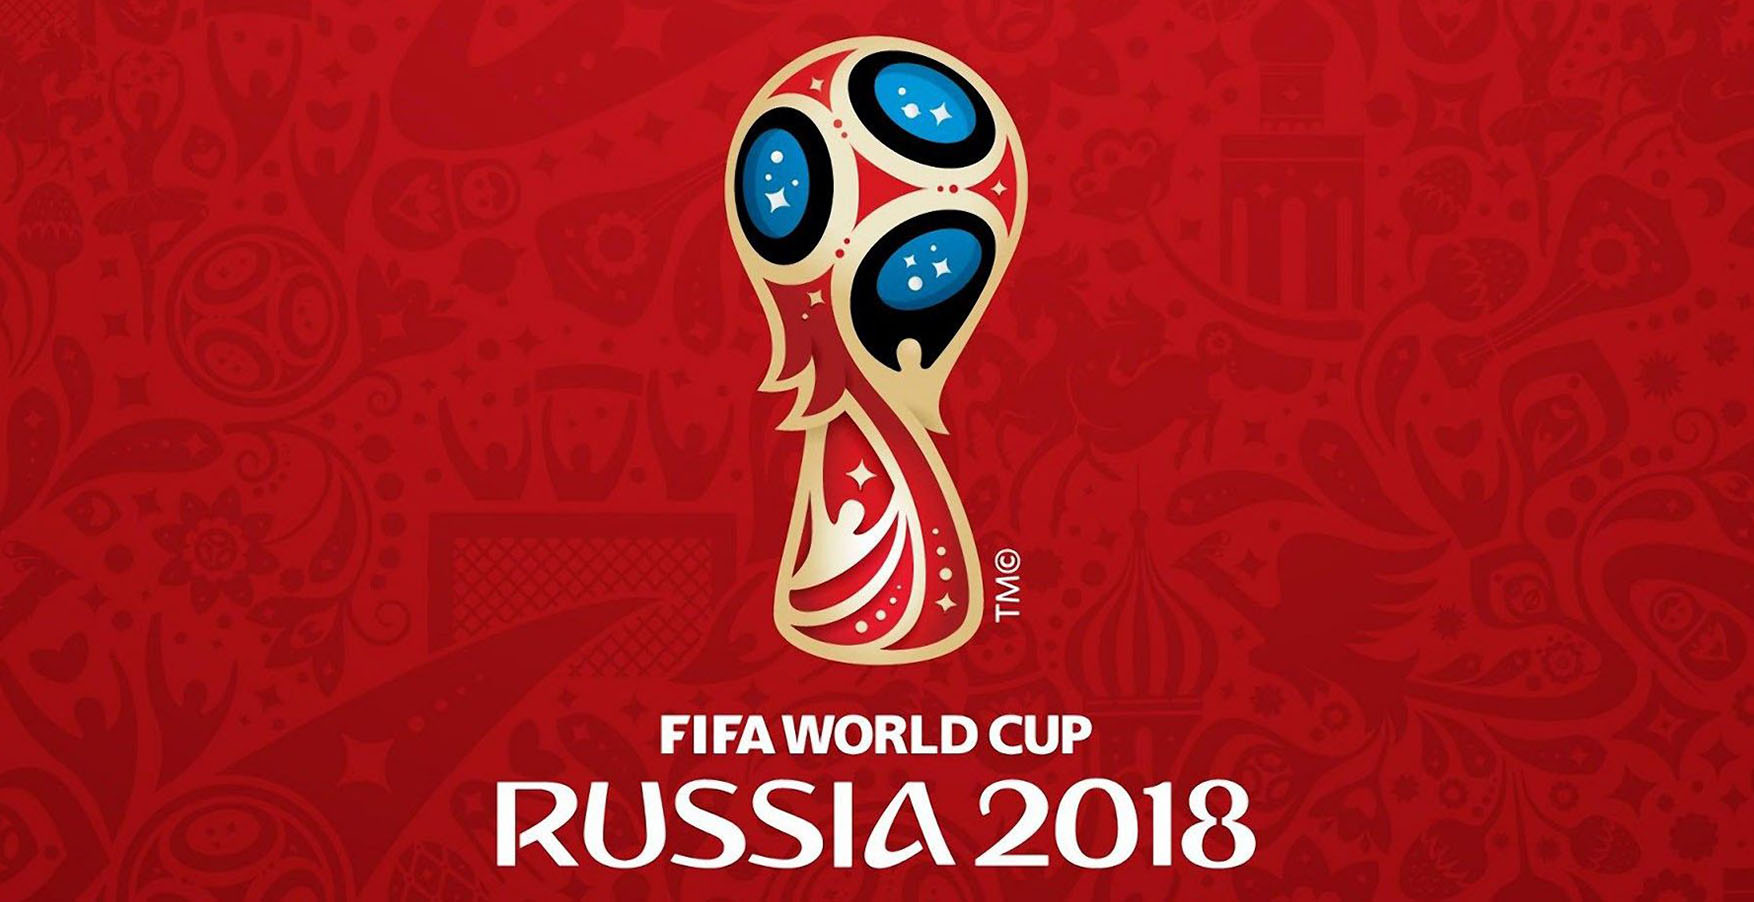 Play these football games in this World Cup 2018 Russia!